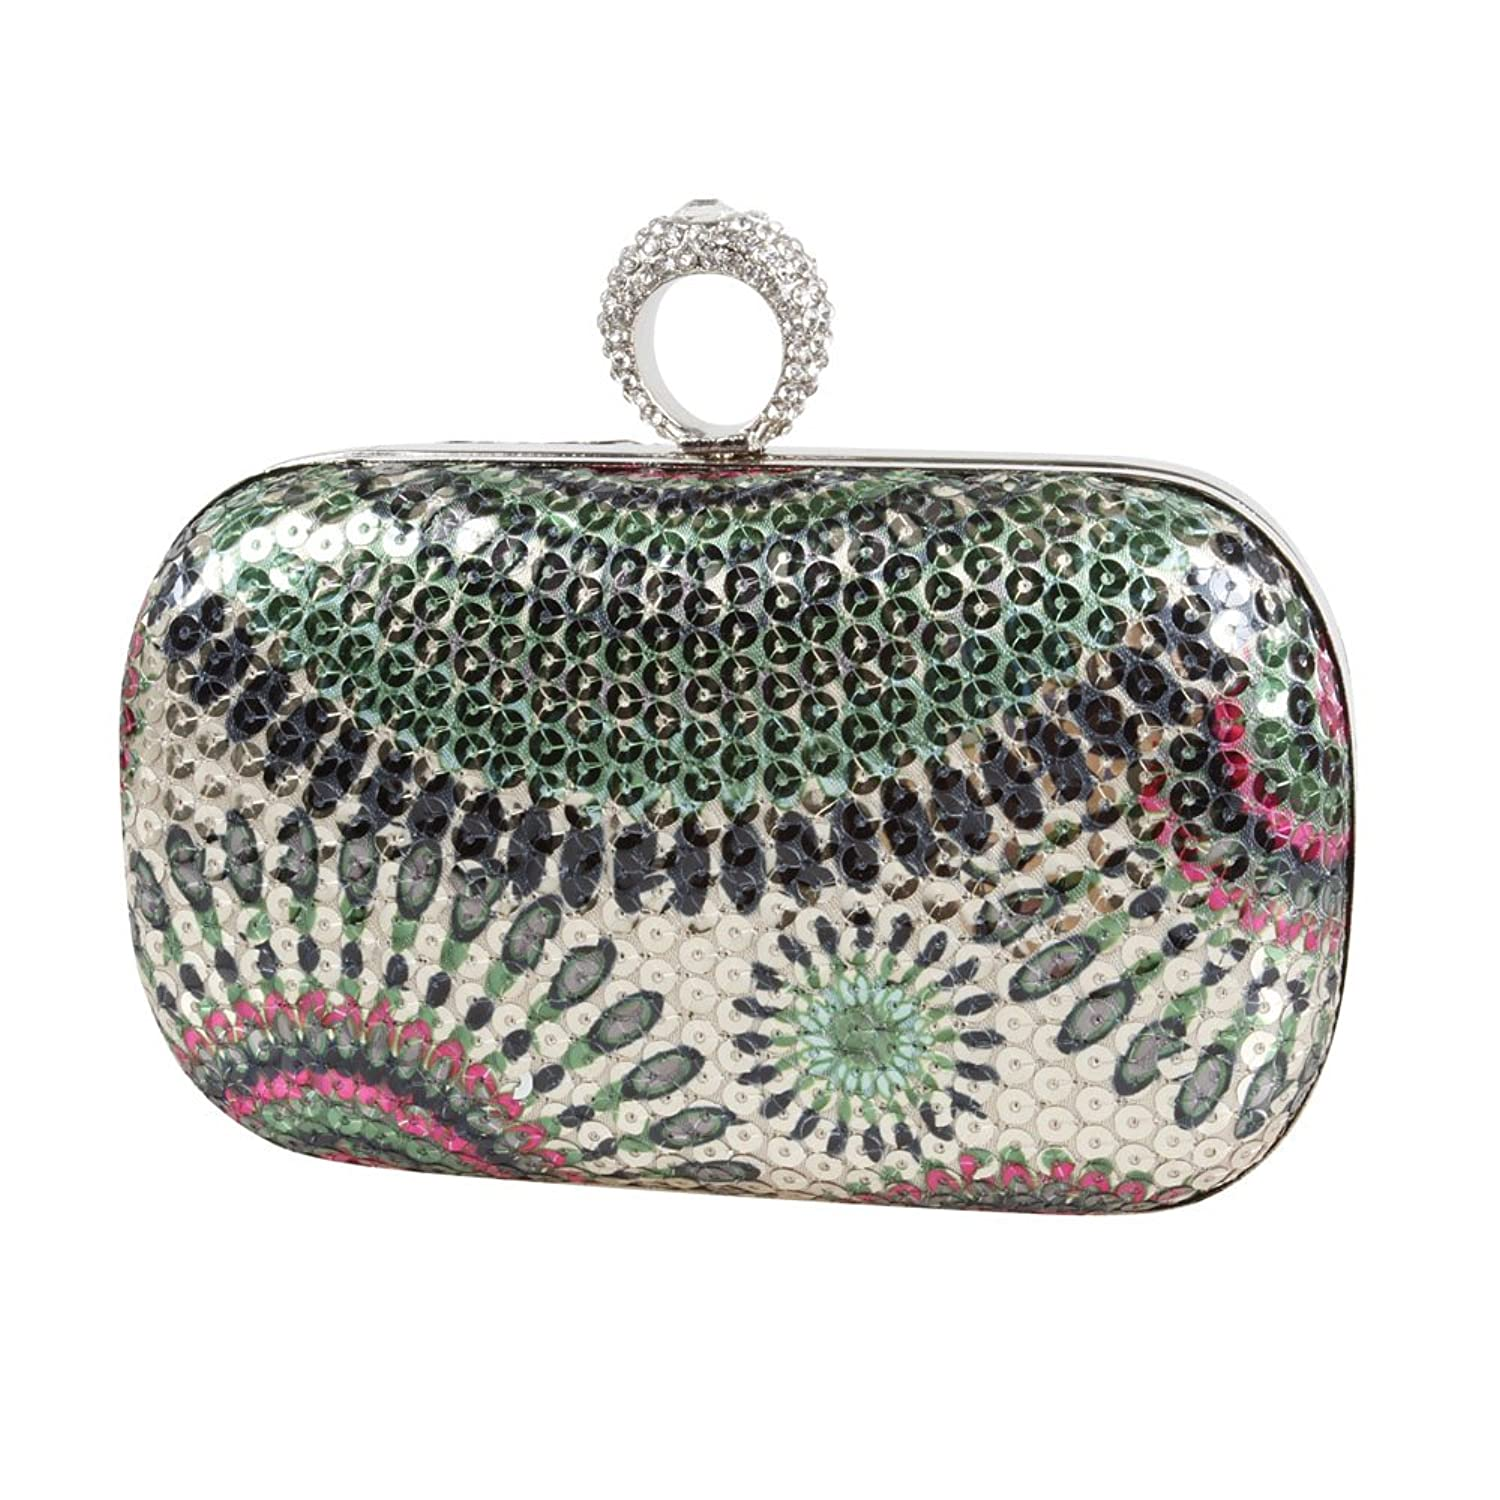 BMC One Ring Rhinestone Studded Knuckle Duster Mini Sequin Womens Evening Clutch Purses Free Spirit Collection - Various Designs